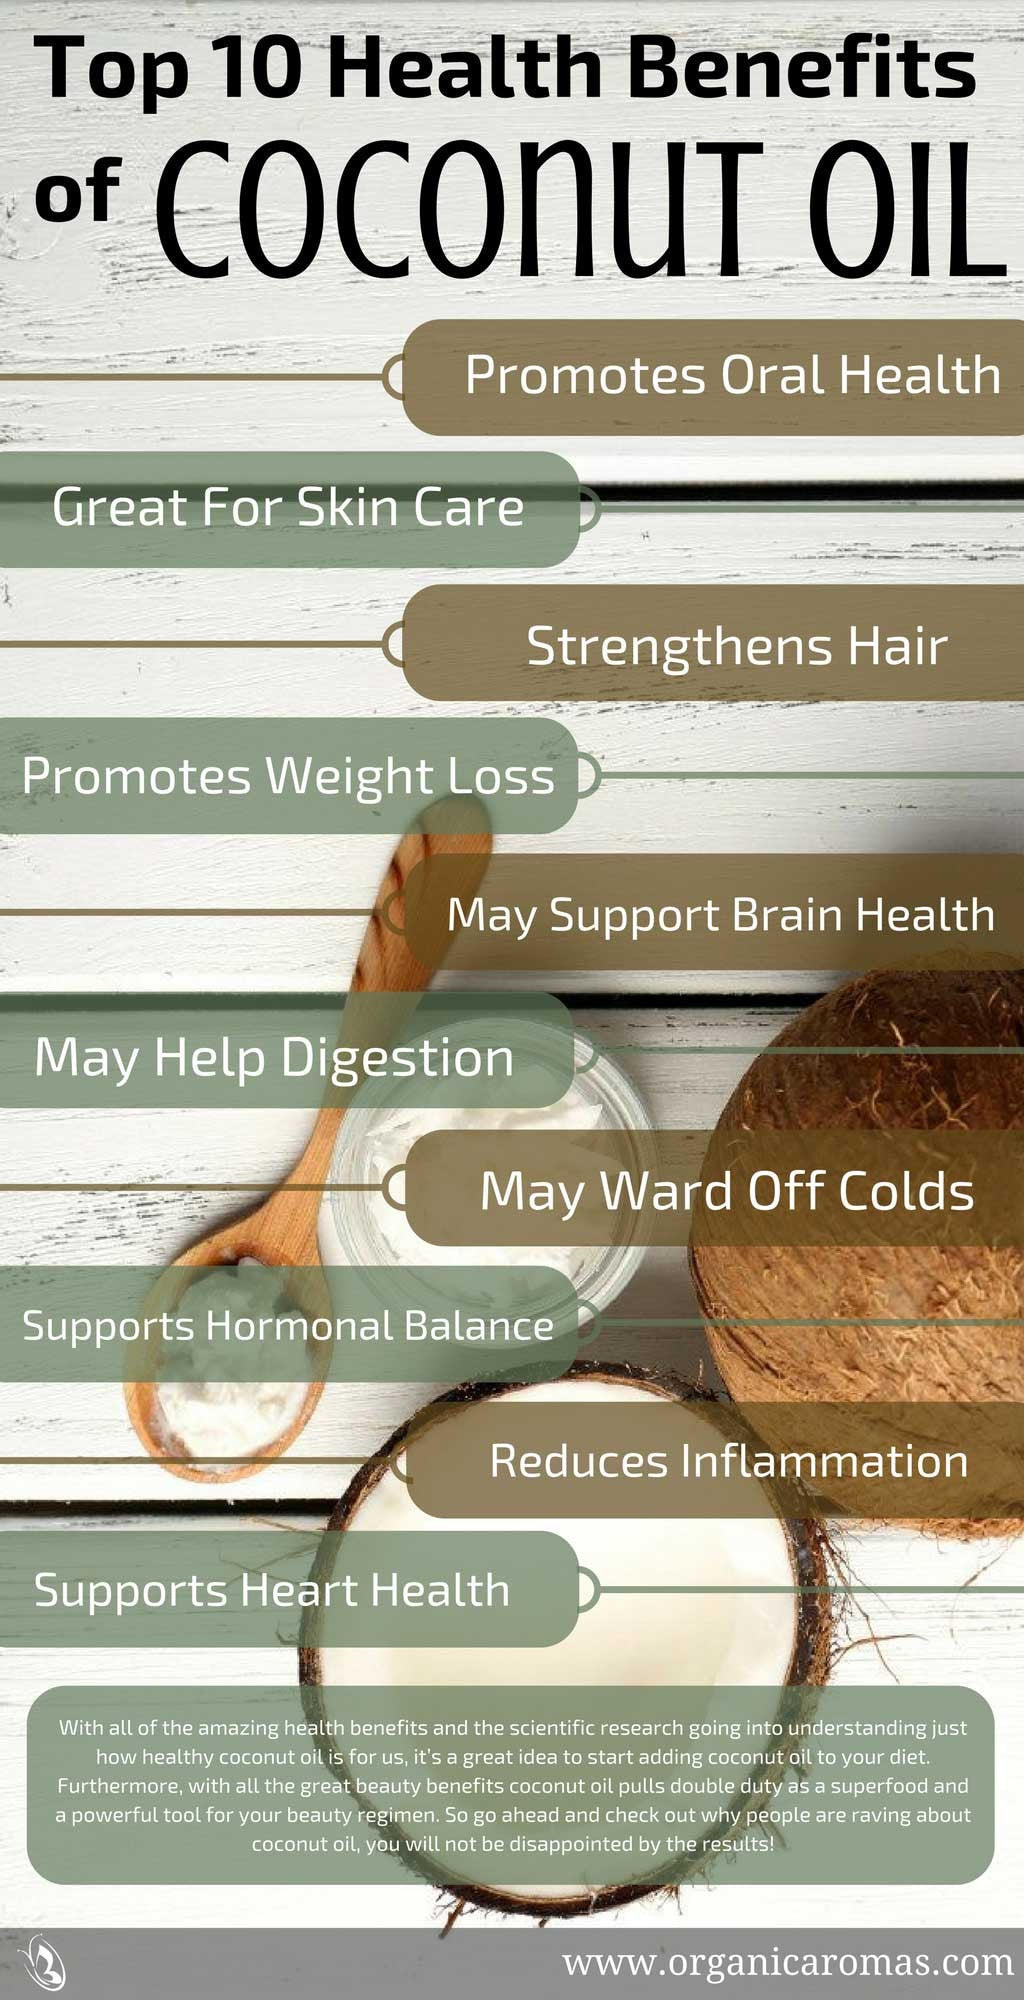 Top 10 Health Benefits of Coconut Oil Info-graphic